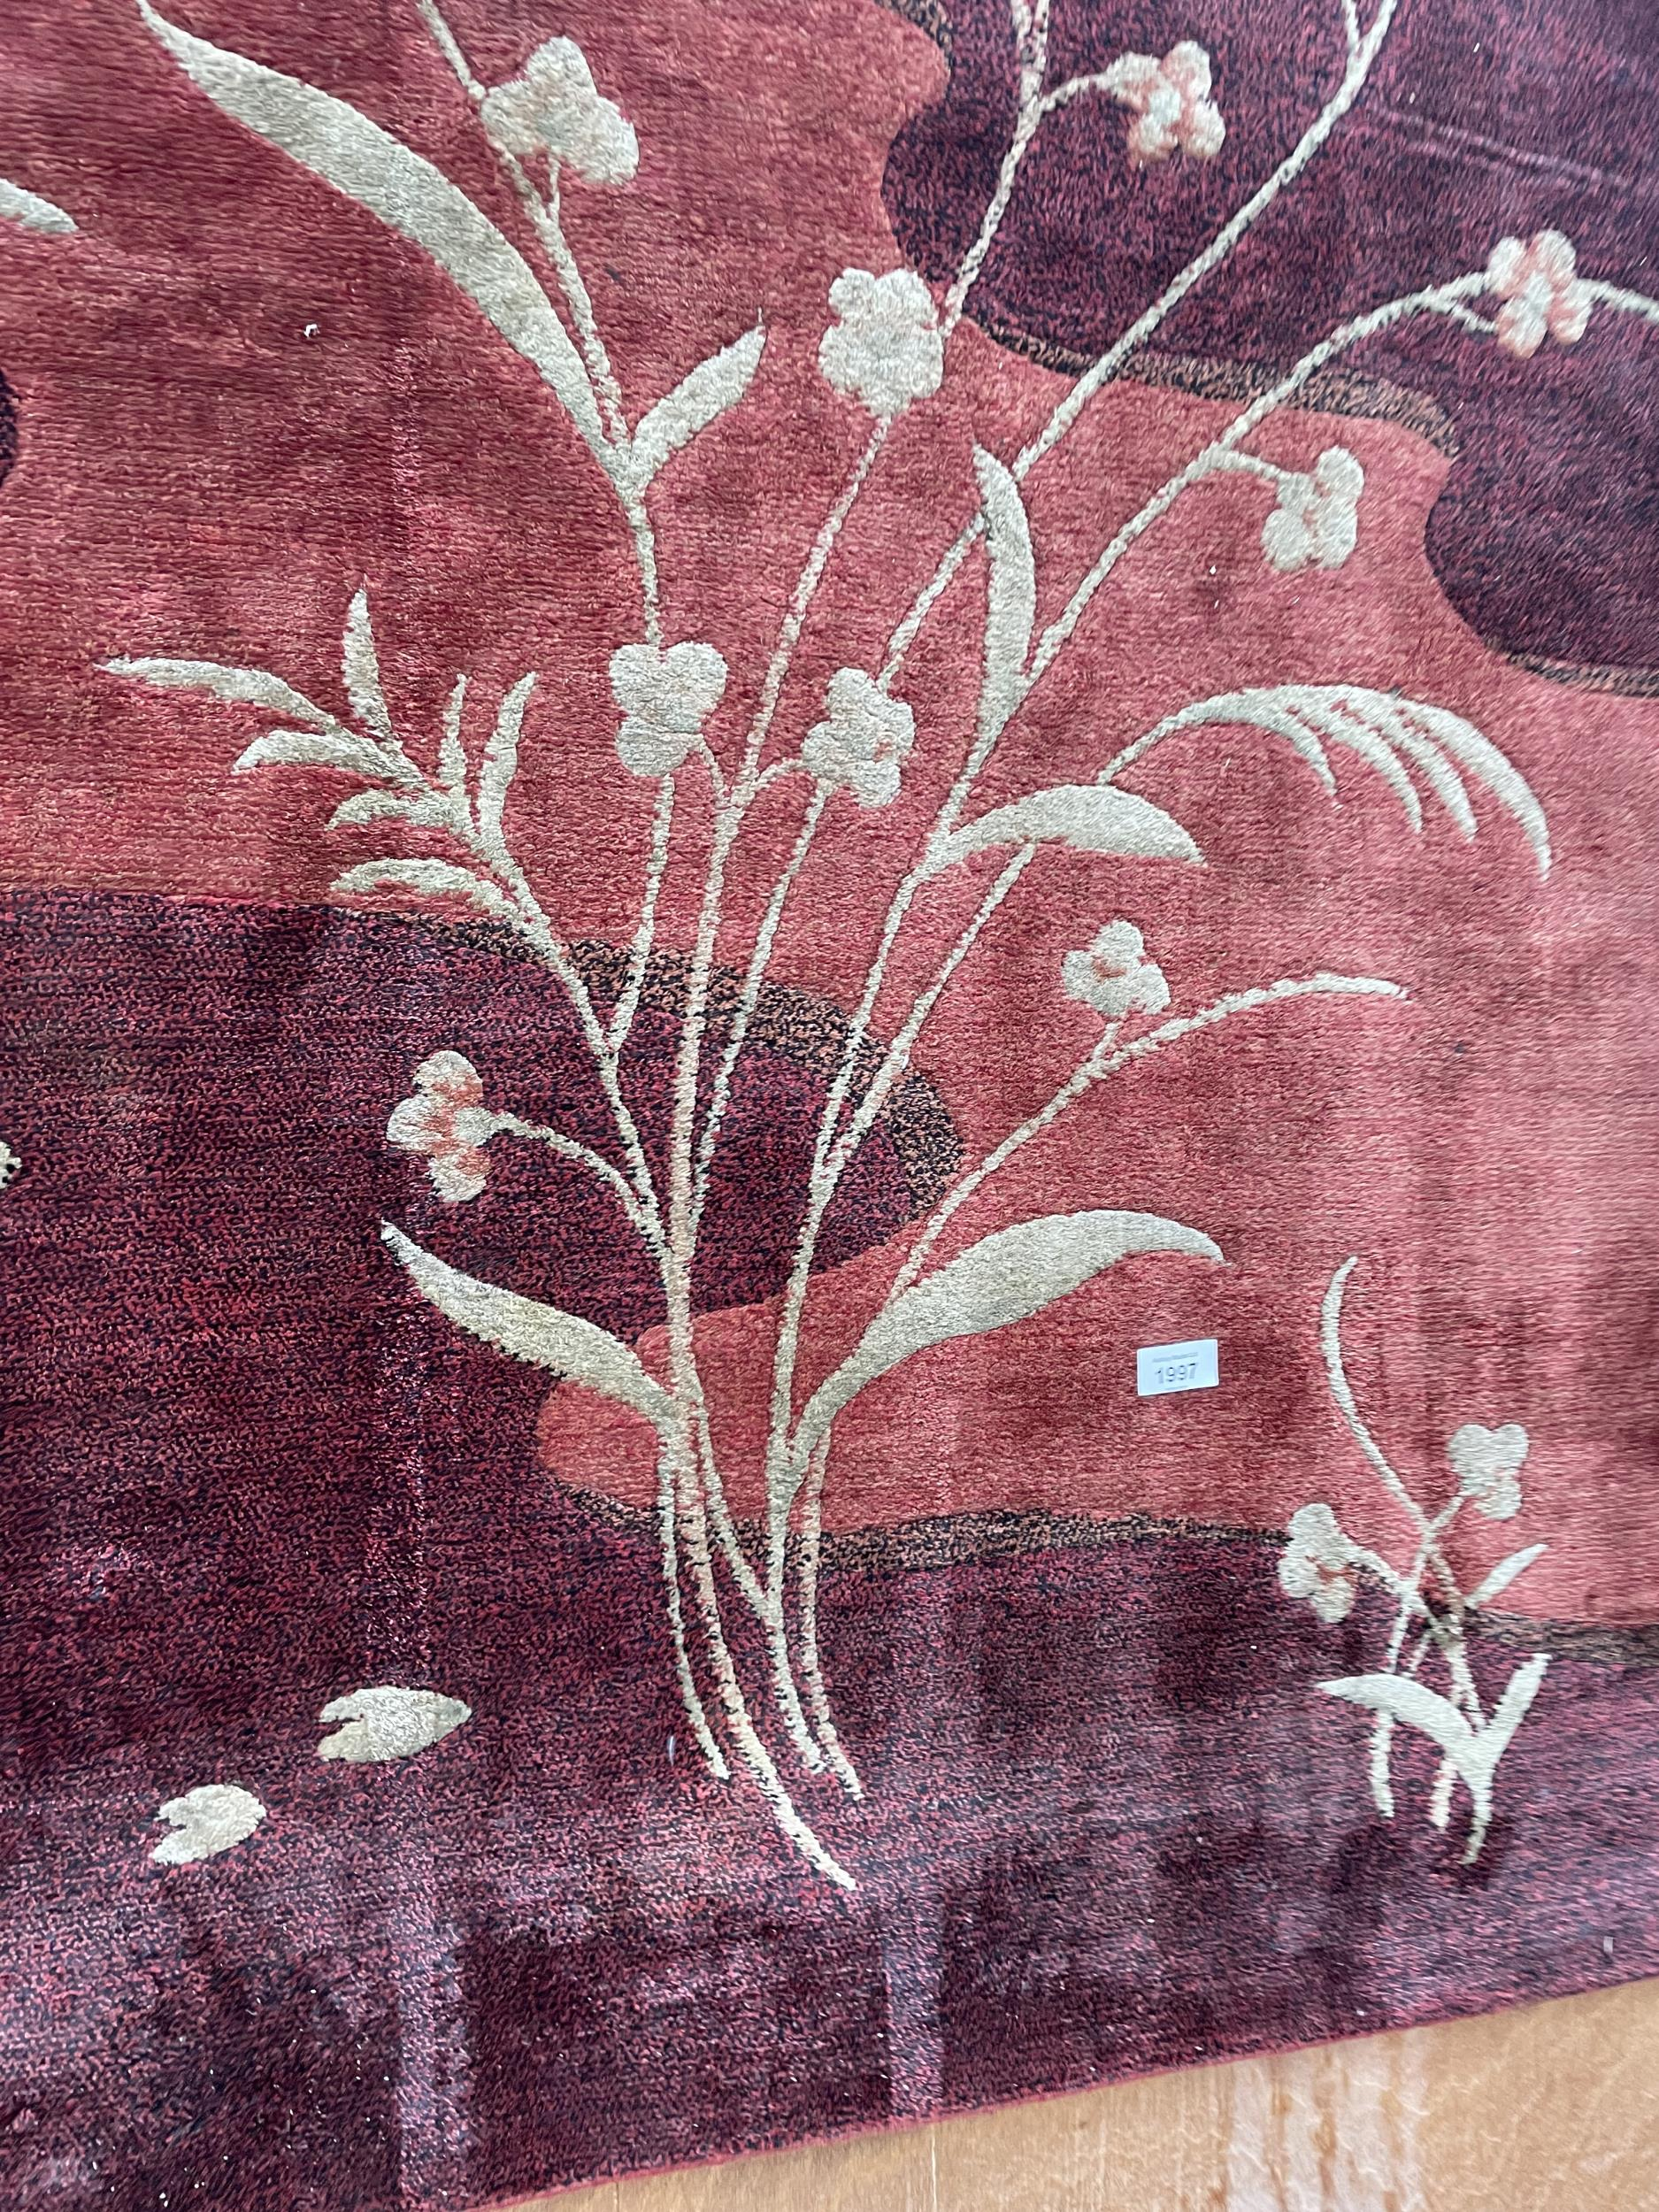 A LARGE MODERN RED PATTERNED RUG - Image 3 of 3